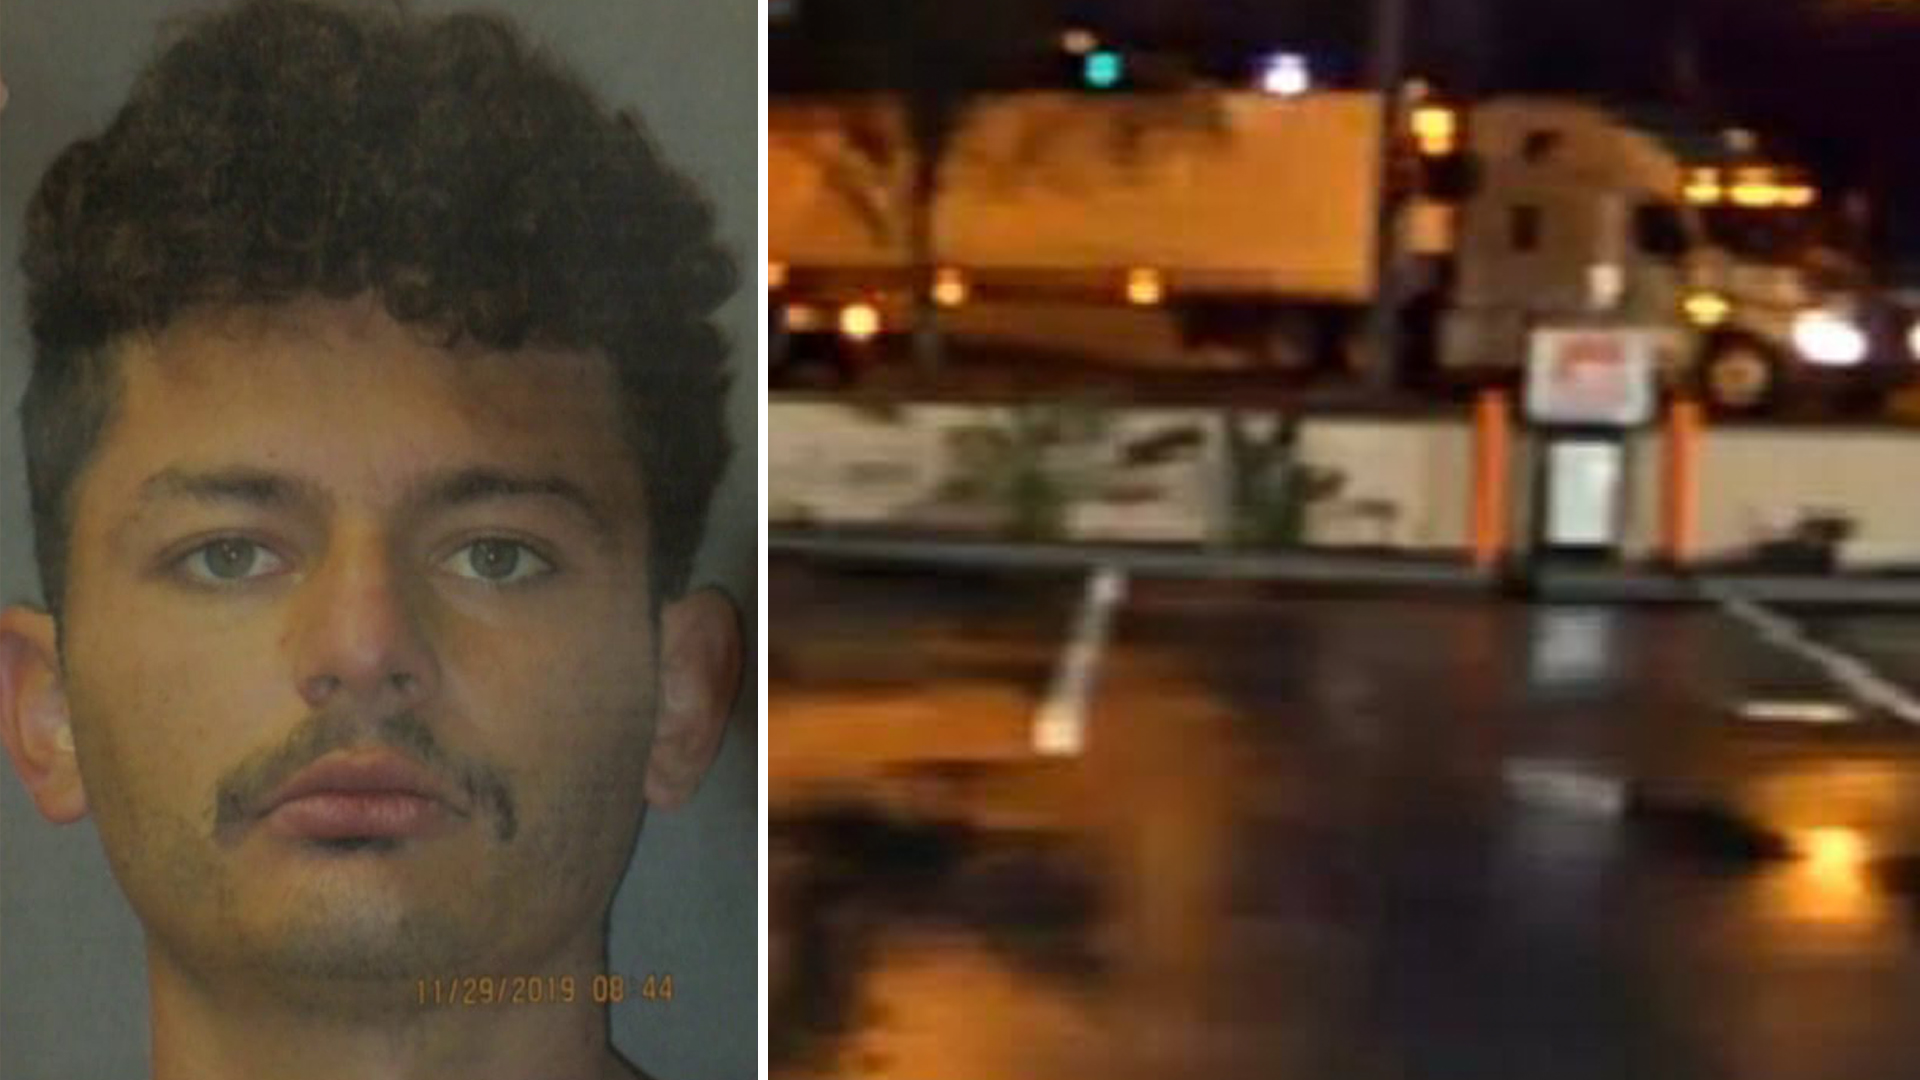 Ricardo Preciado-Saldivar, 26, is seen in an undated photo provided by the La Habra Police Department on Dec. 2, 2019. On the right, a big rig whose driver is believed to have witnessed the crash is seen in a photo released by police.